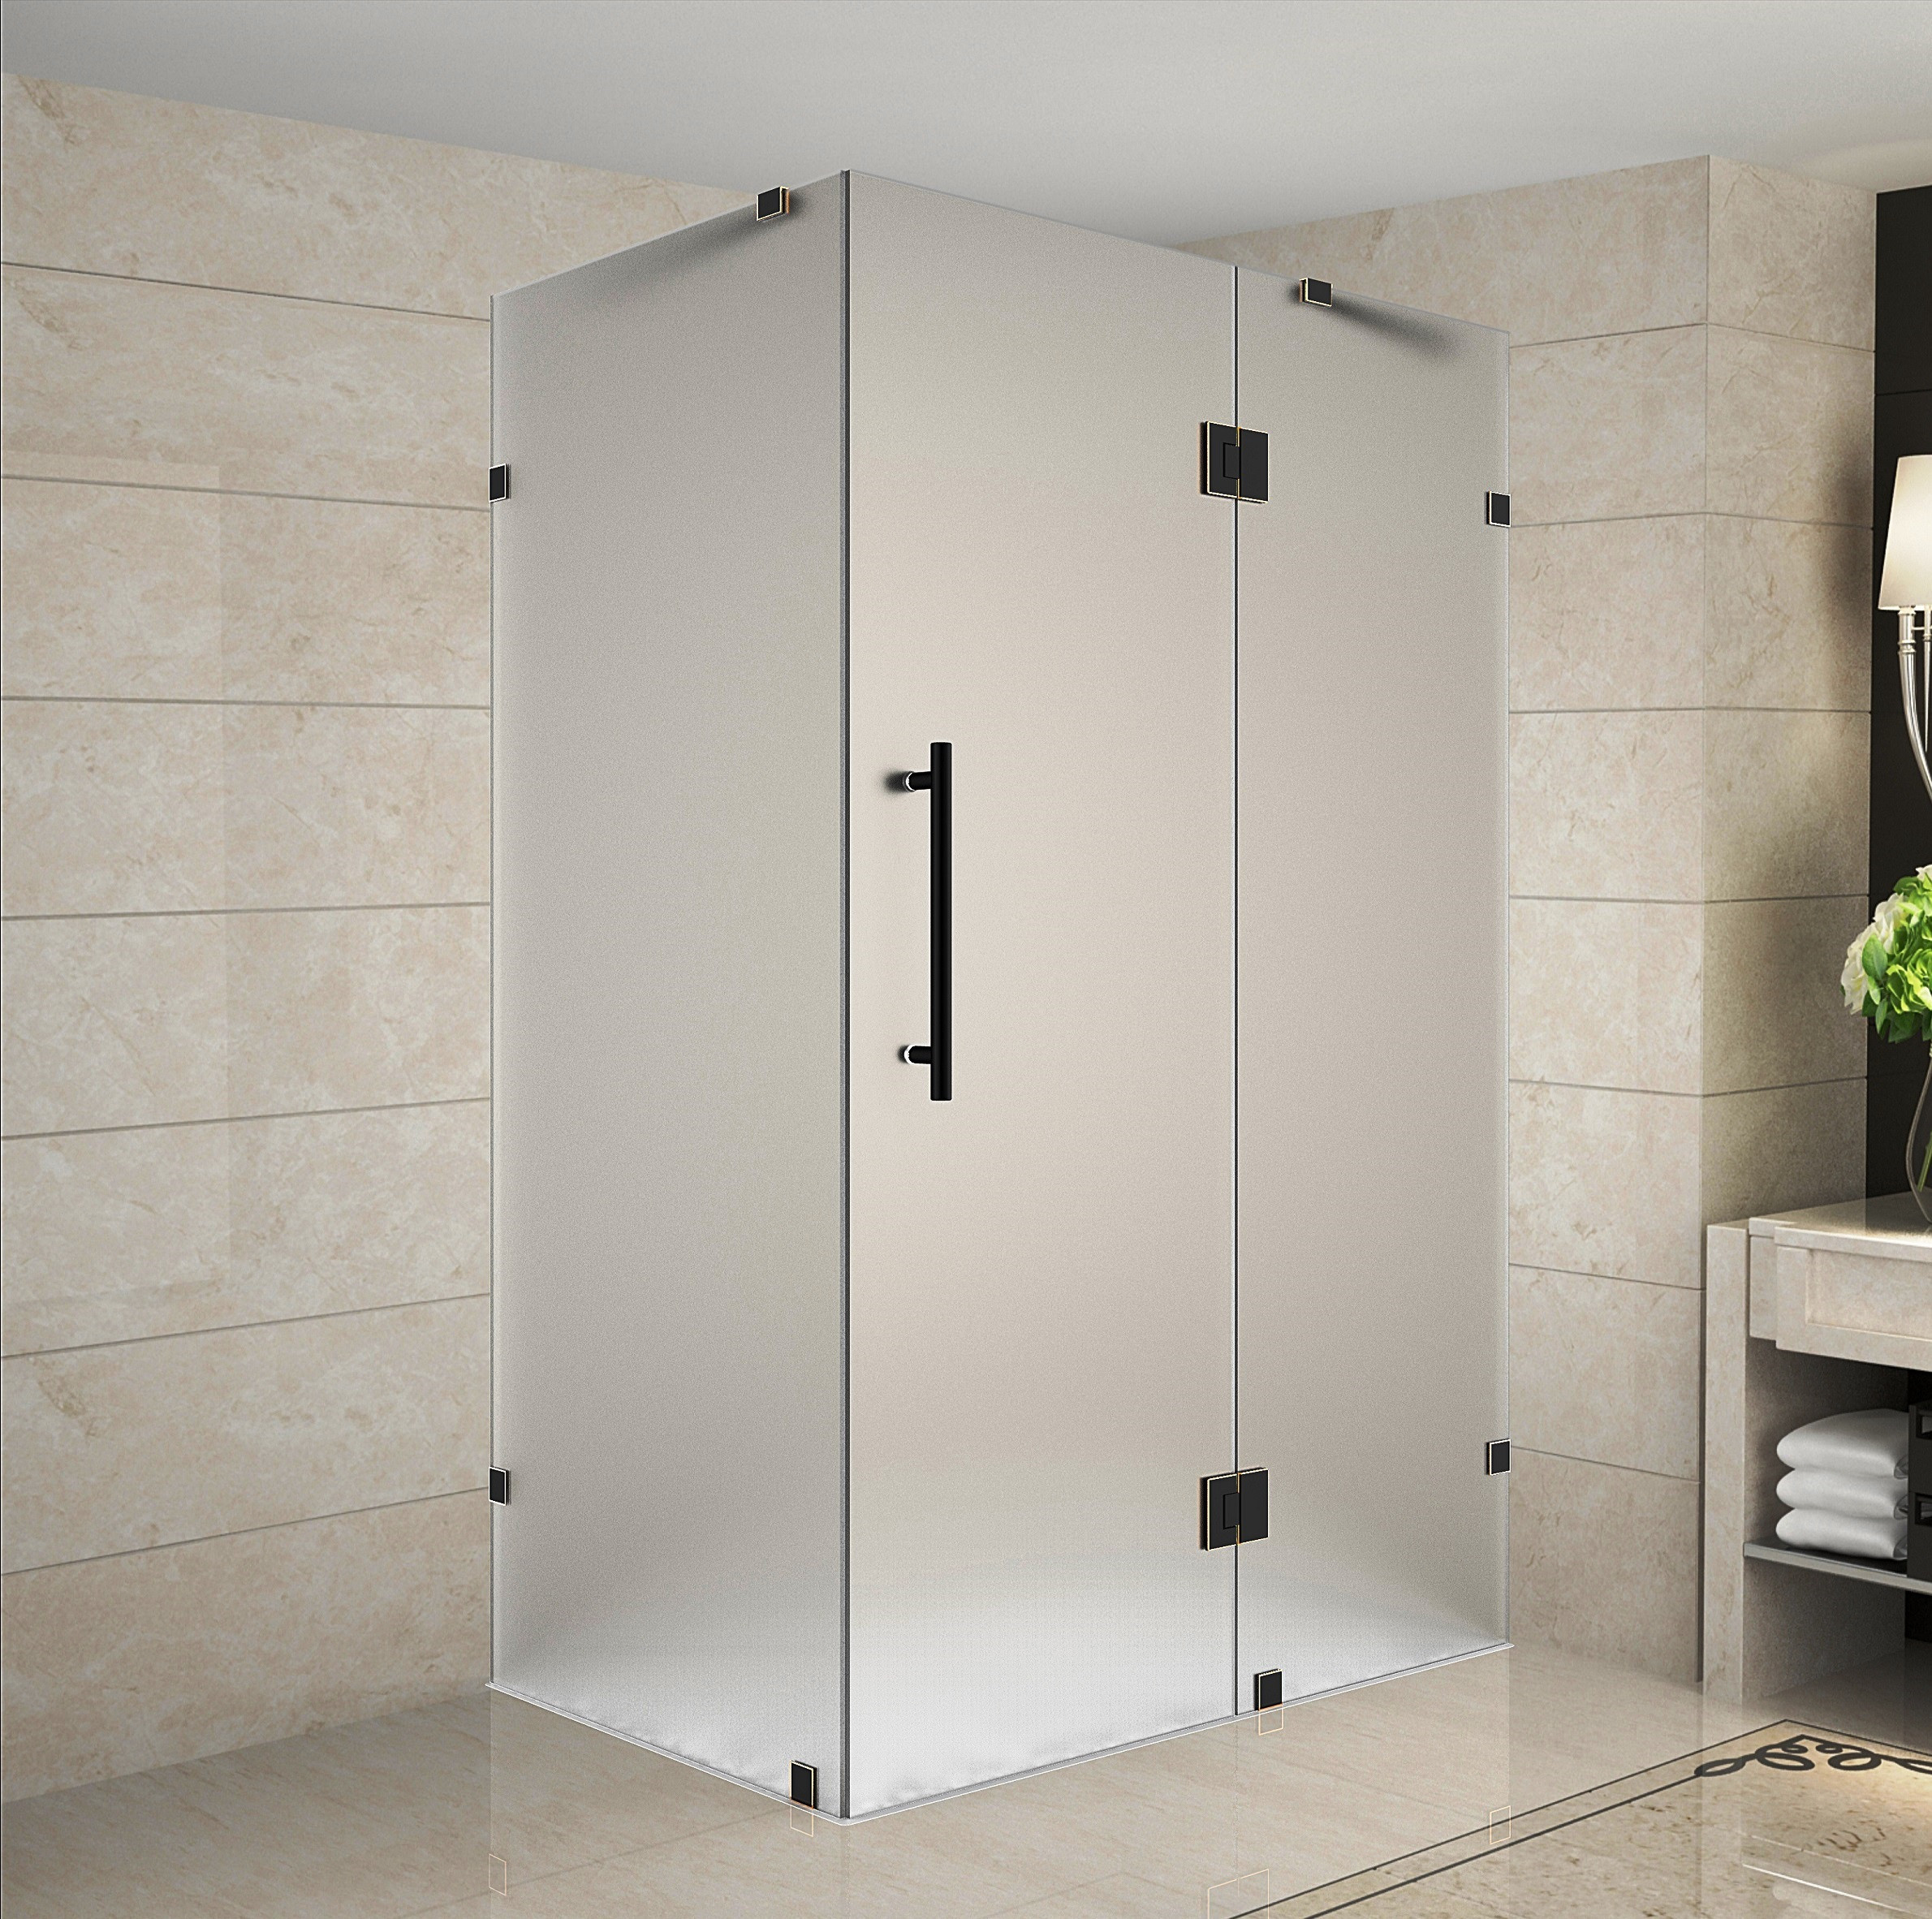 Aston Global SEN987F-CH-3534-10 Avalux Completely Frameless Frosted Glass Shower Enclosure In Chrome